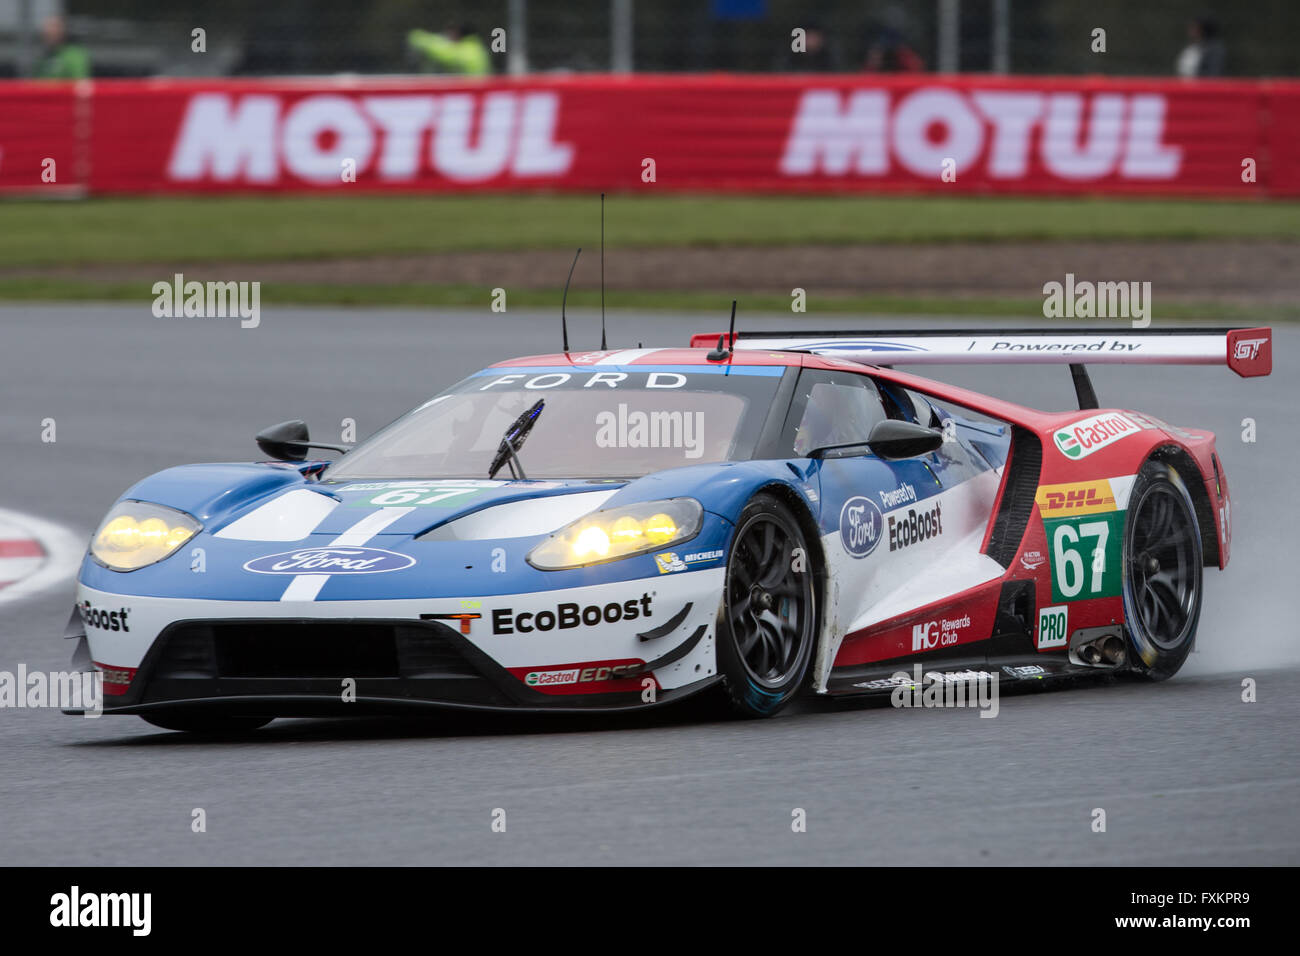 Fia World Endurance Championship  Hours Of Silverstone Qualifying Ford Chip Ganassi Team Uk Ford Gt Lmgte Pro Driven By Marino Franchitti Andy Priaulx